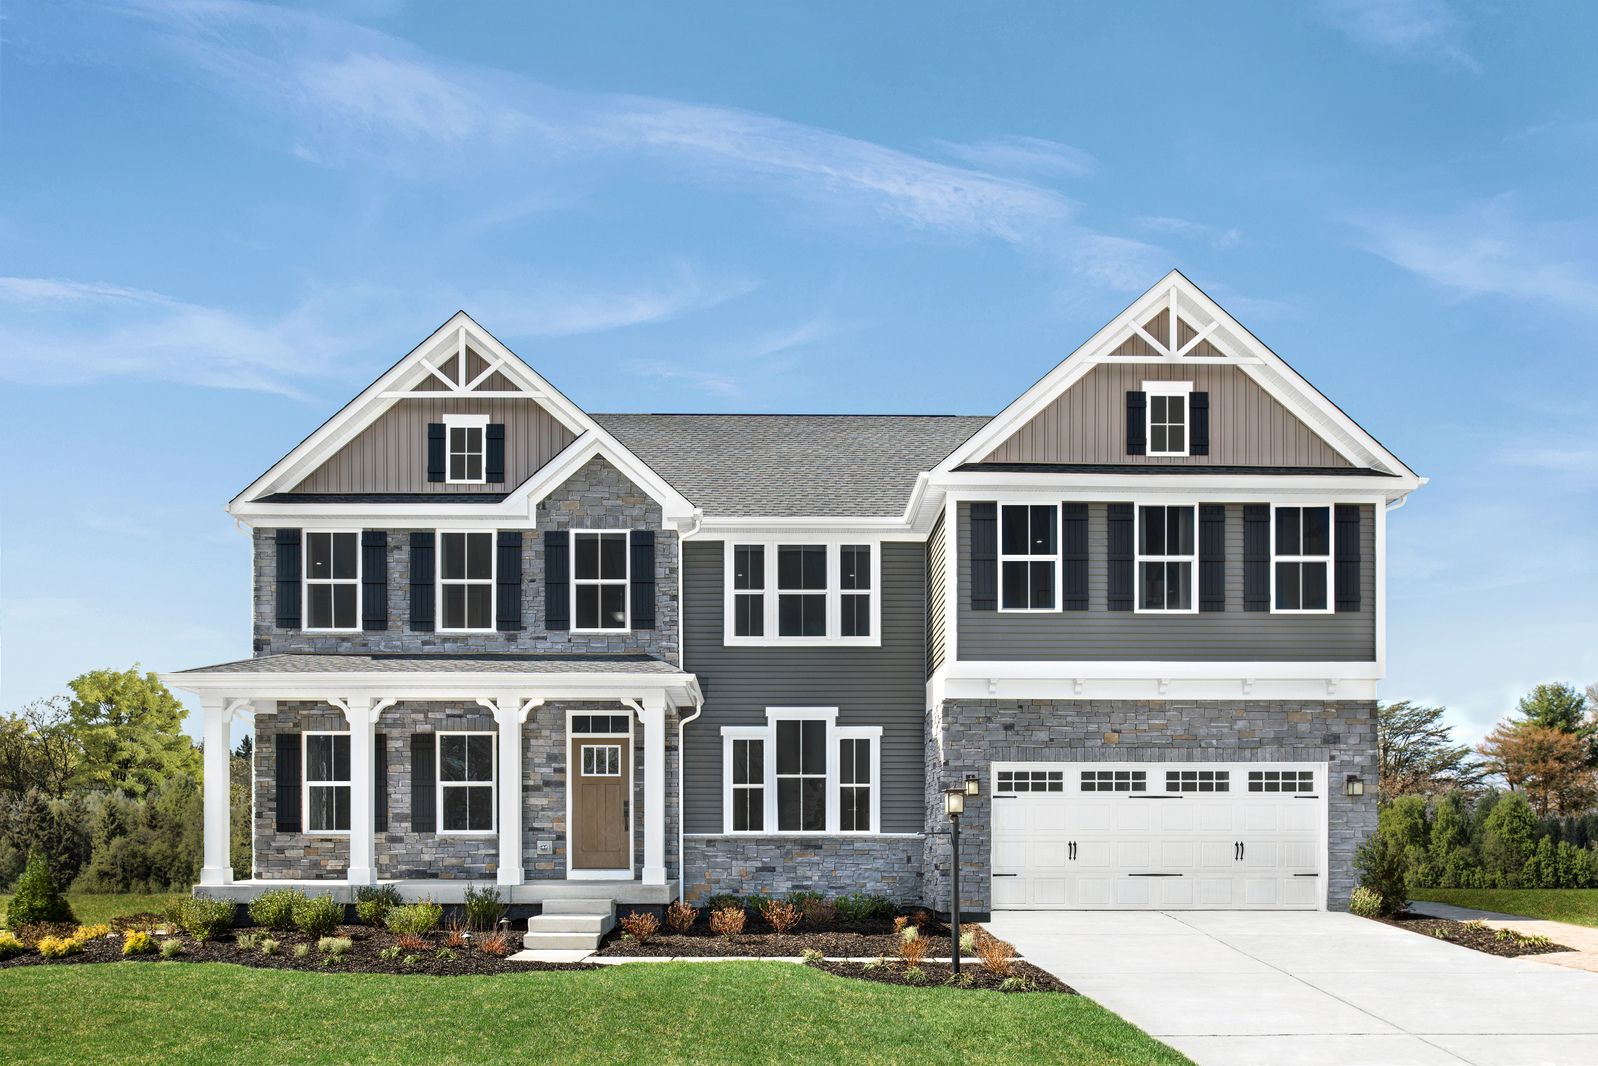 Welcome Home to Arnolds Corner:Schedule your visit todayto build your new home at Arnolds Corner, Columbia's newest and fastest selling community!